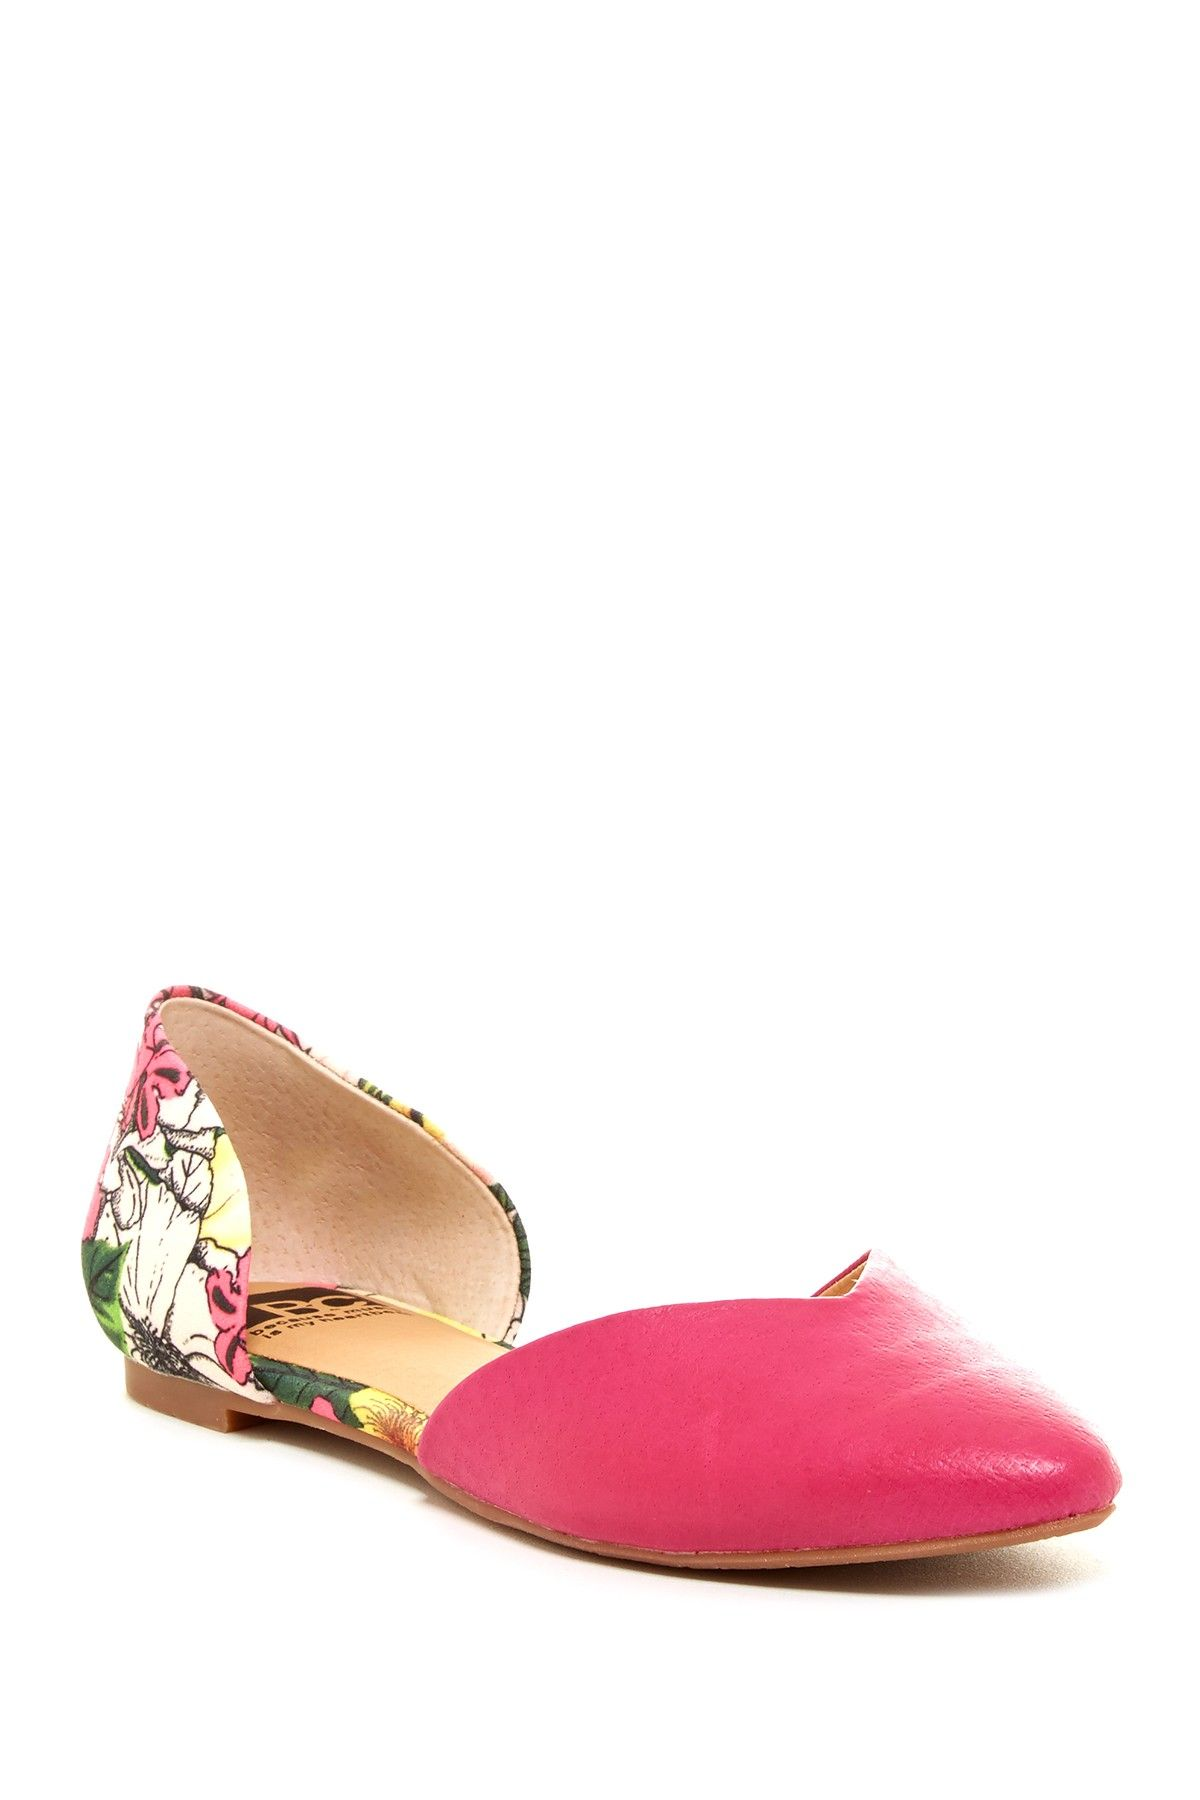 Up All Night Flat in magenta floral